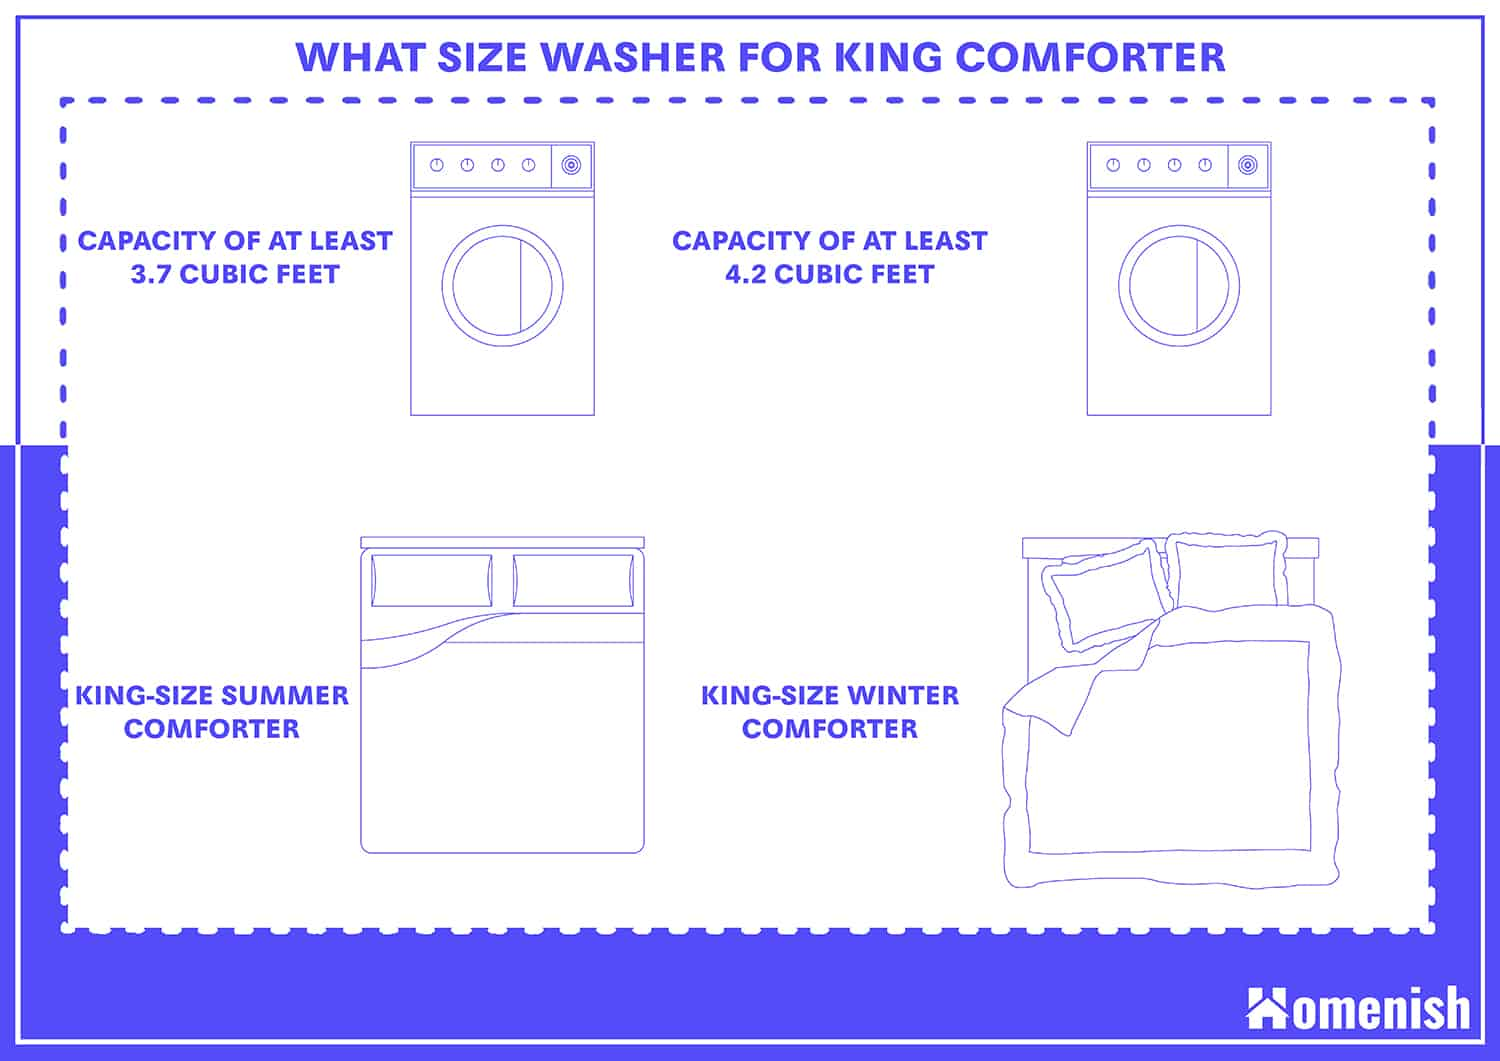 What Size Washer For King Comforter